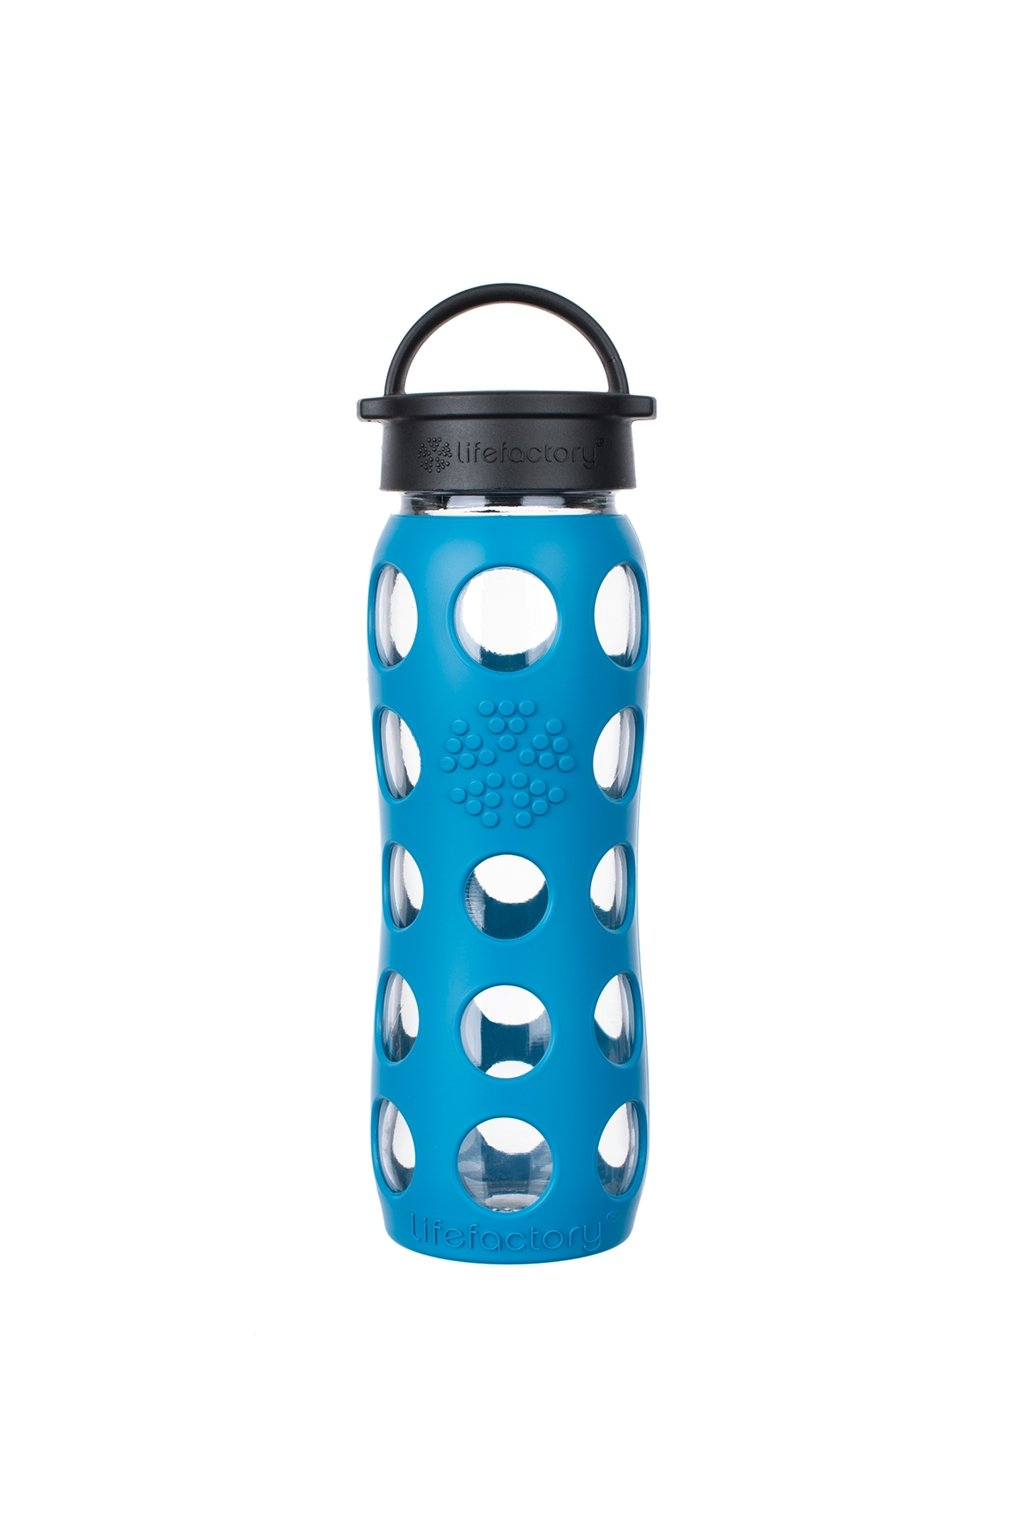 Eko lahev na vodu Lifeafctory 650 ml Teal lake